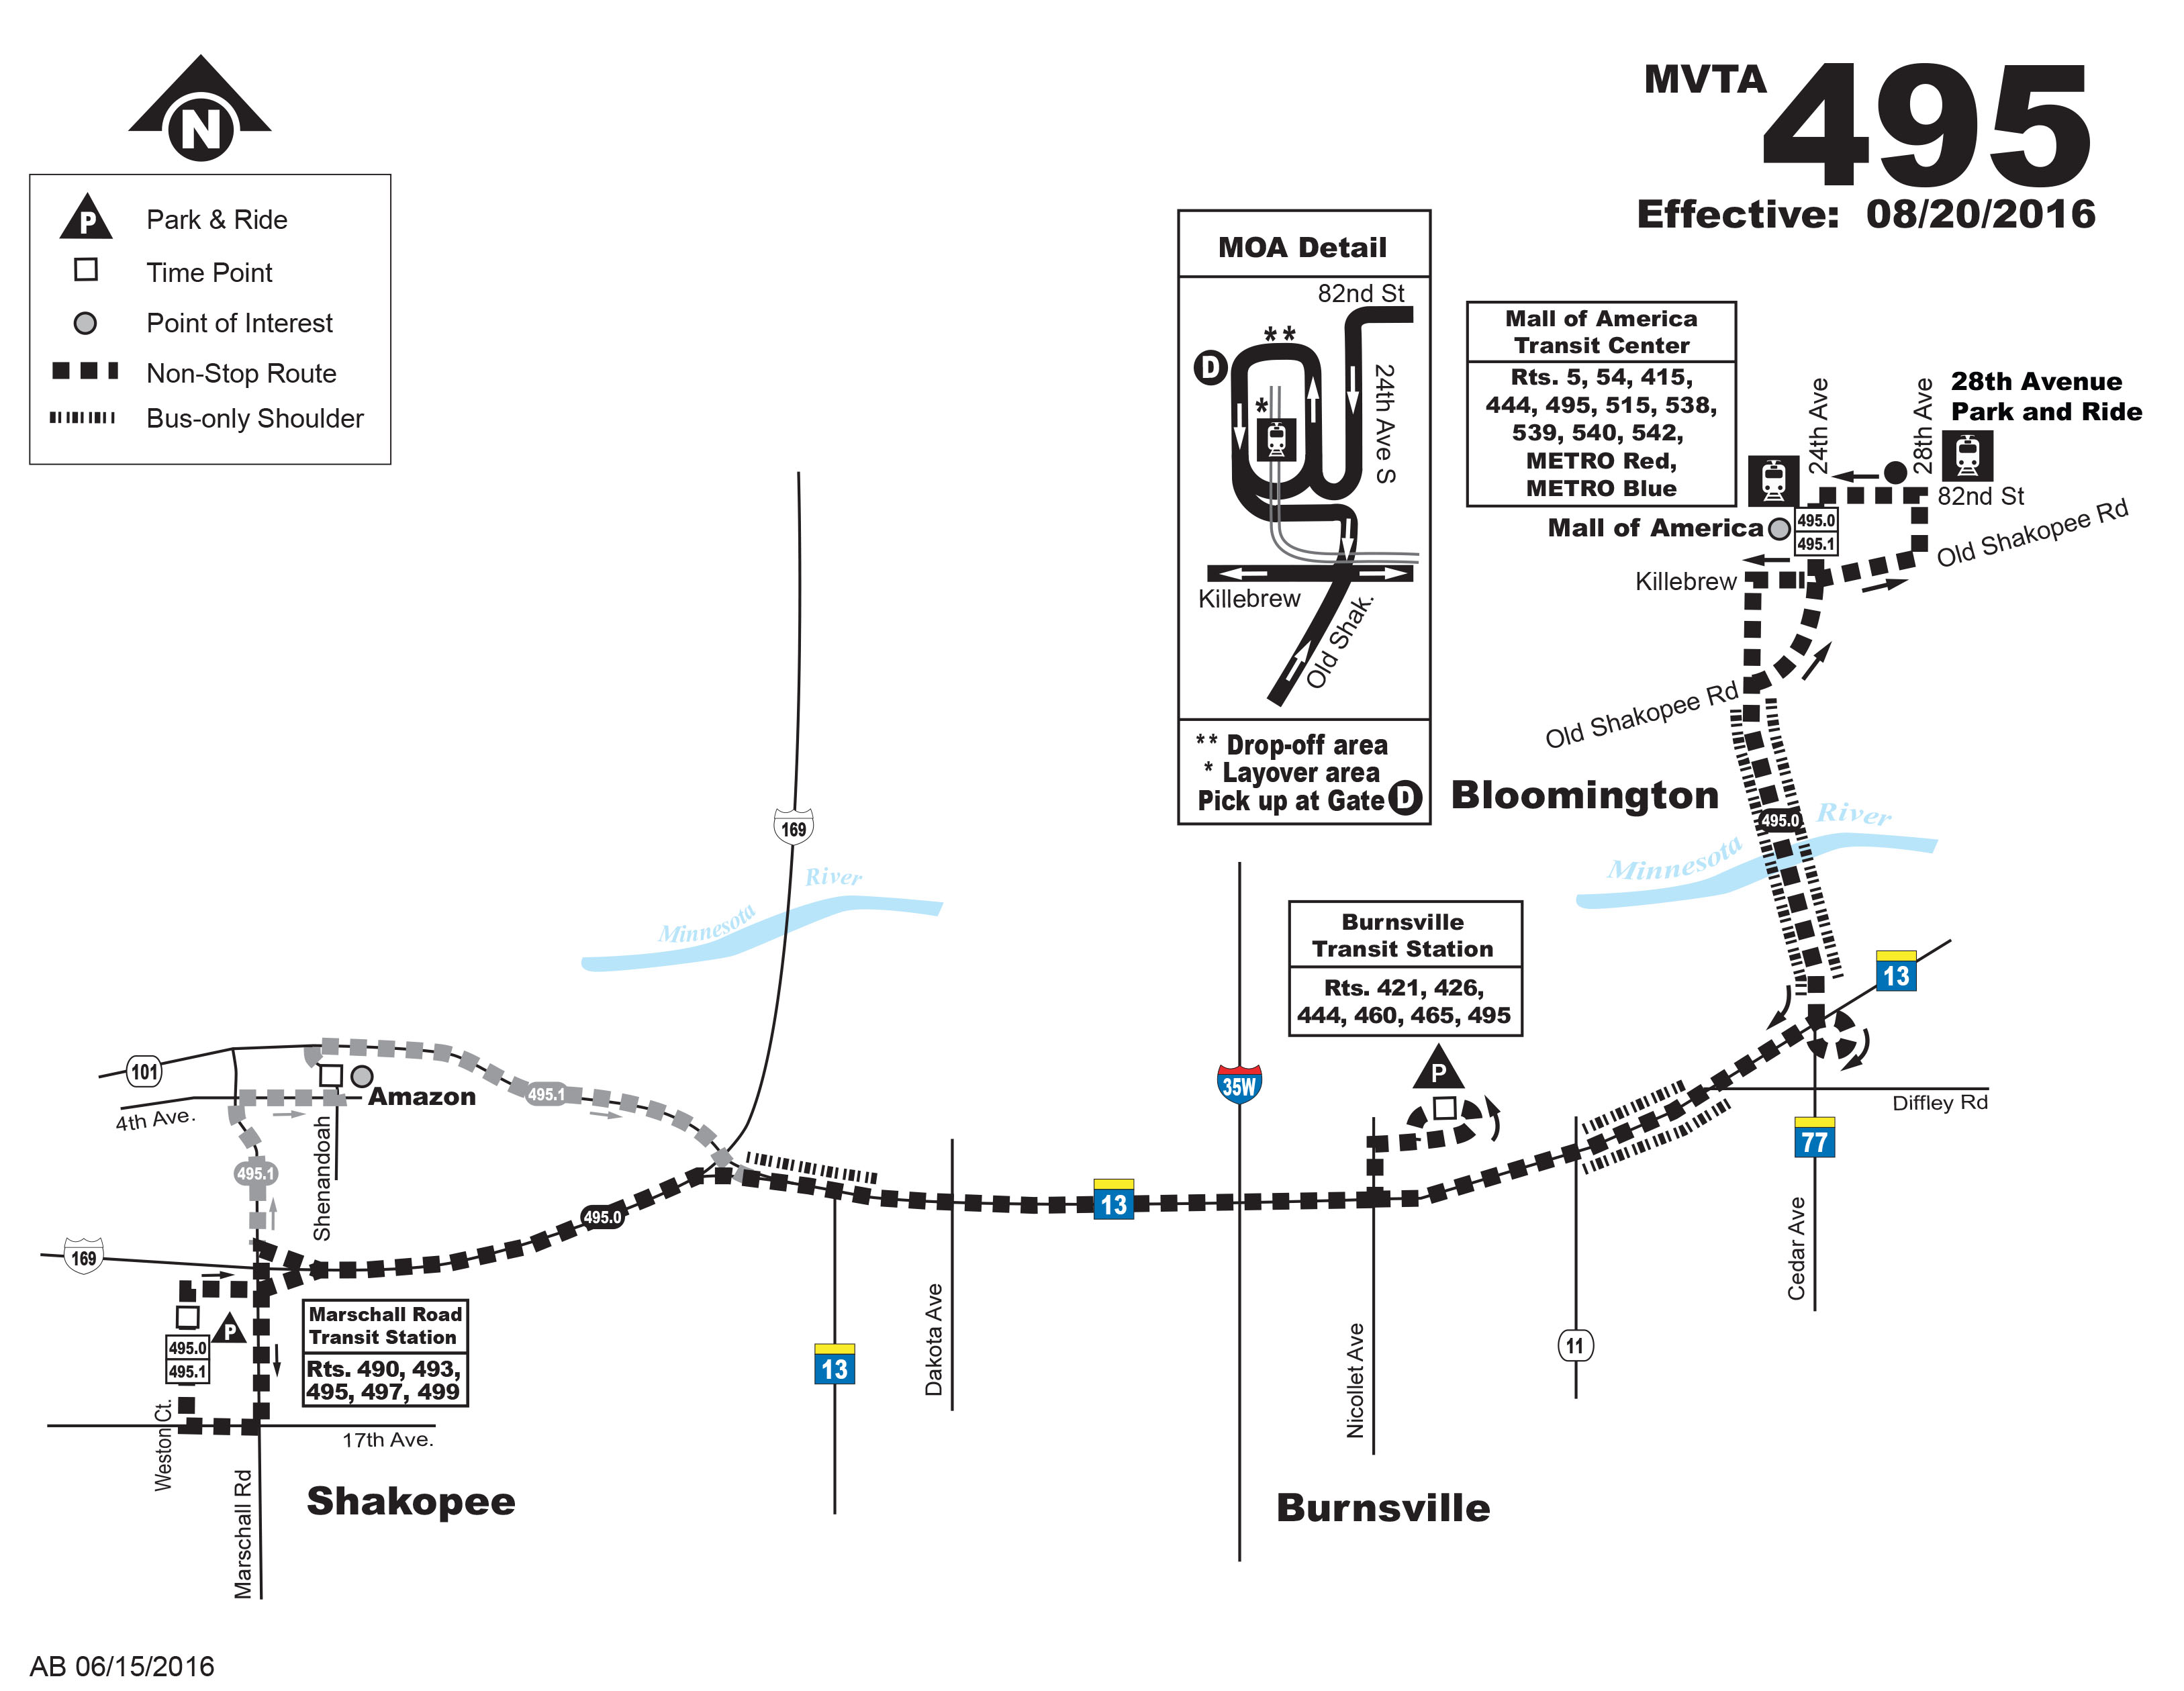 Route 495 map